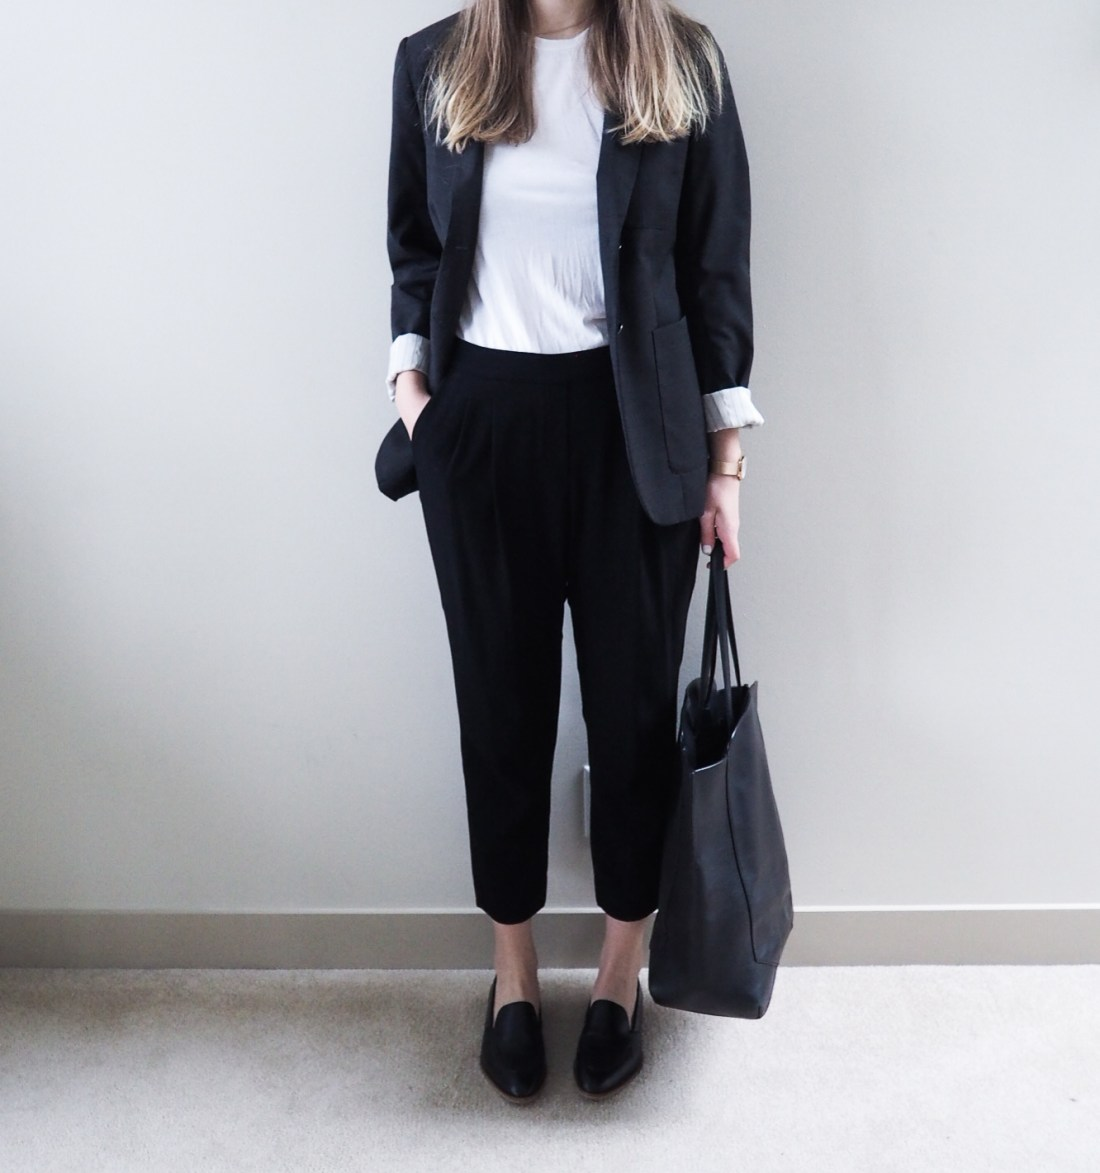 Week in Outfits 01.08.18